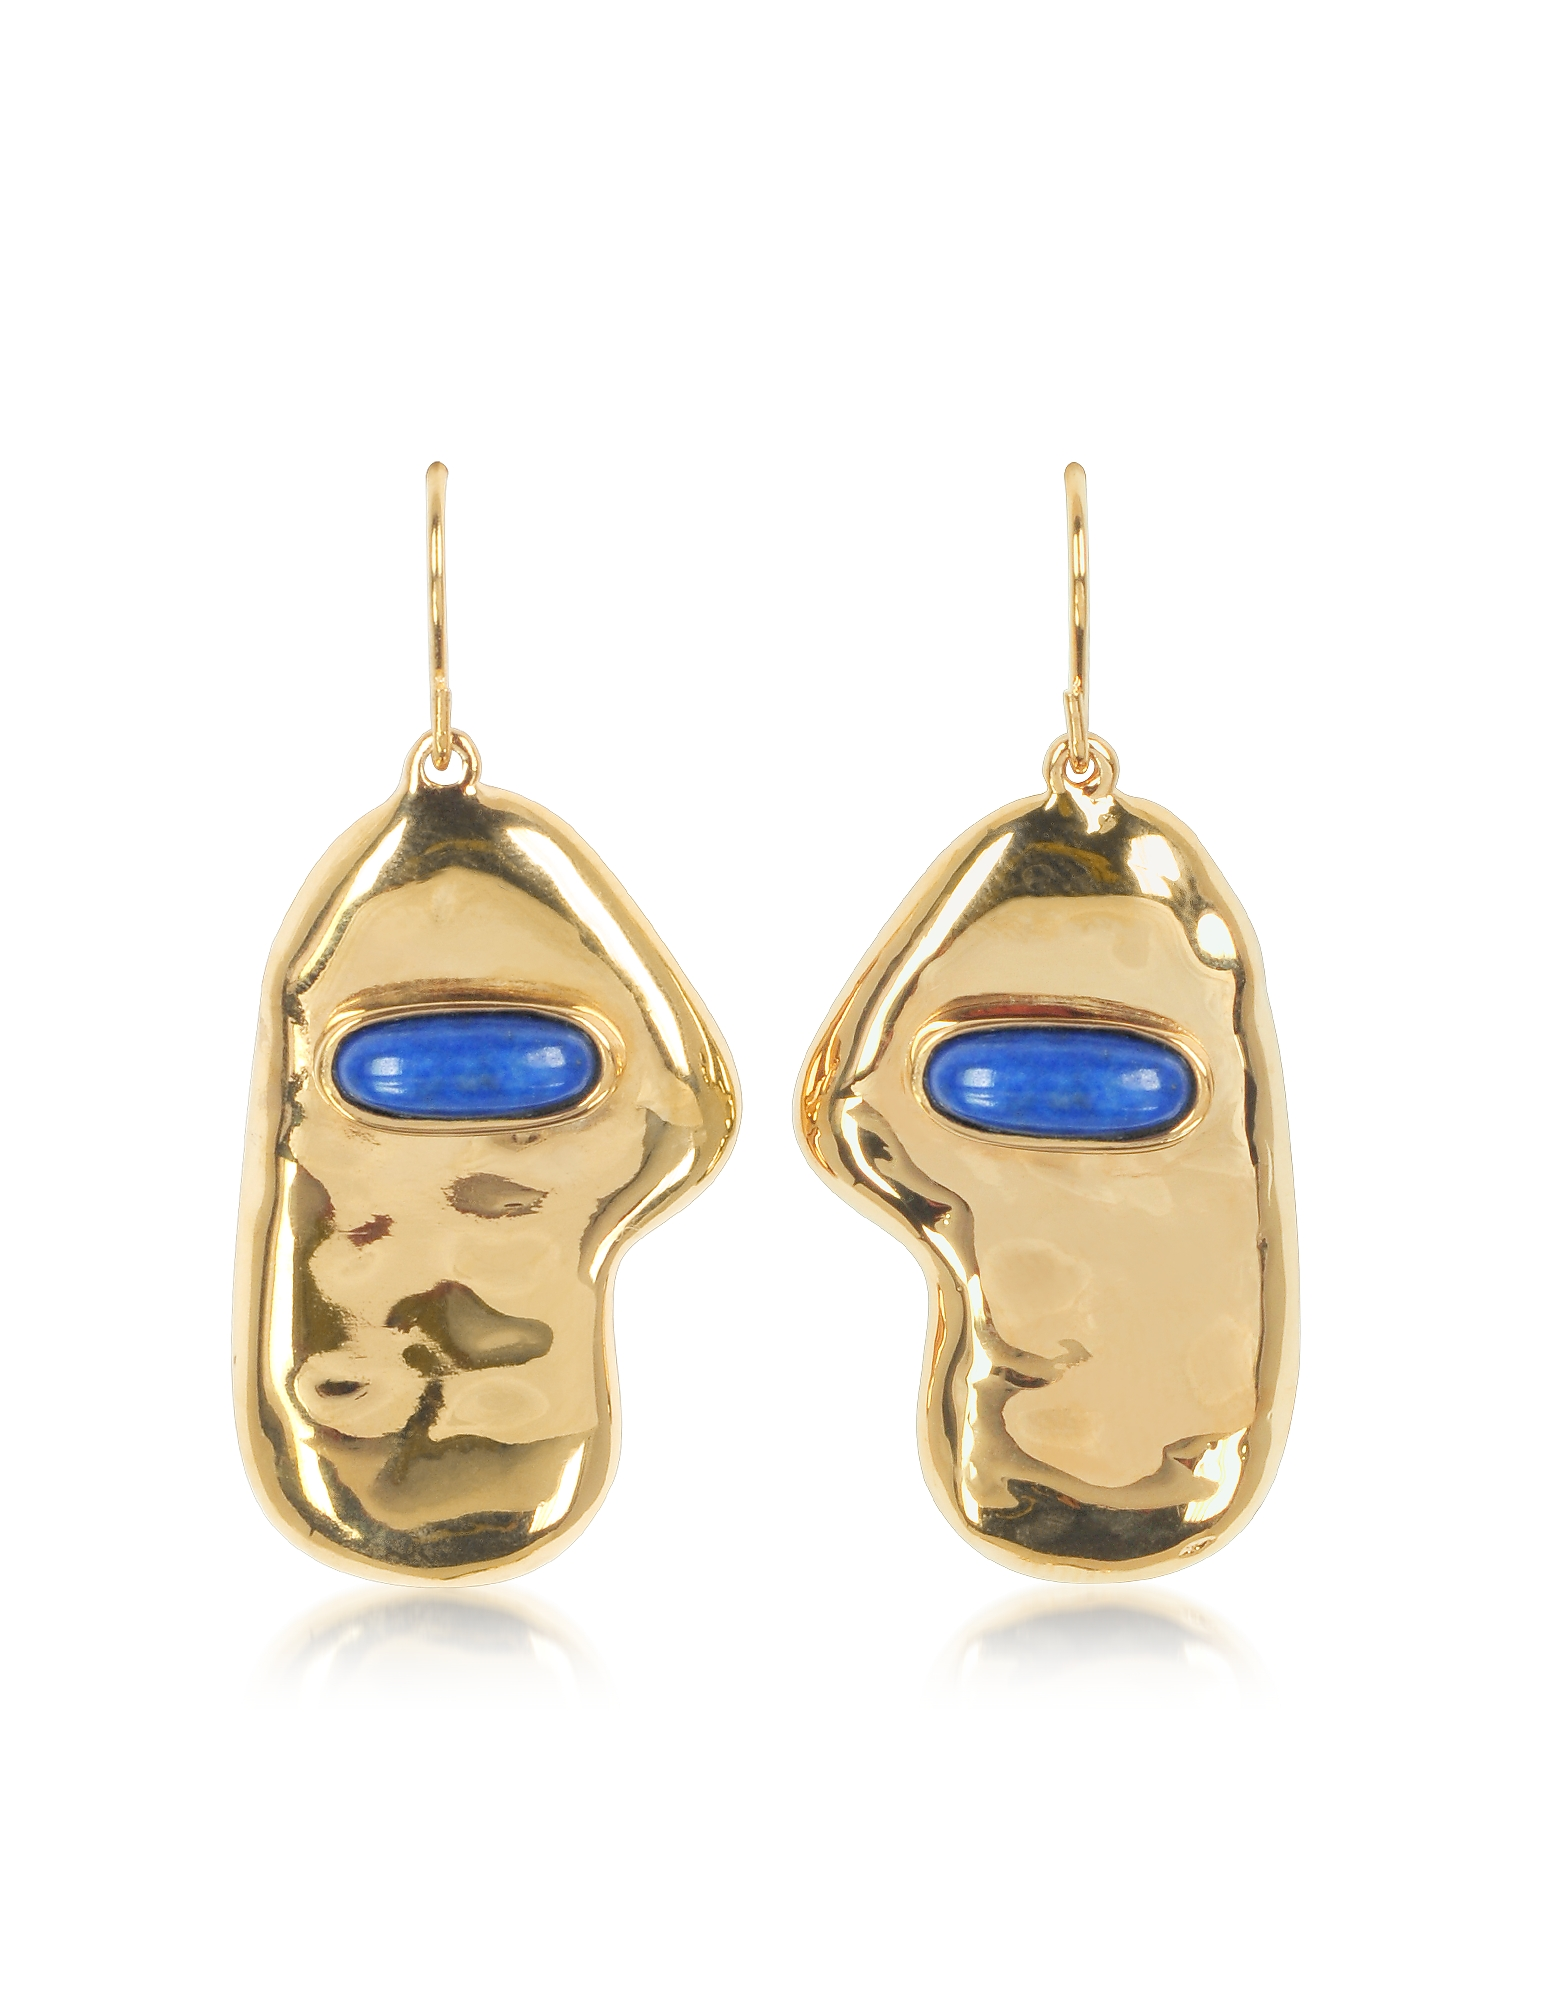 Aurelie Bidermann Earrings, Peggy 18K Gold-Plated Earrings w/Lapis Lazuli Stone